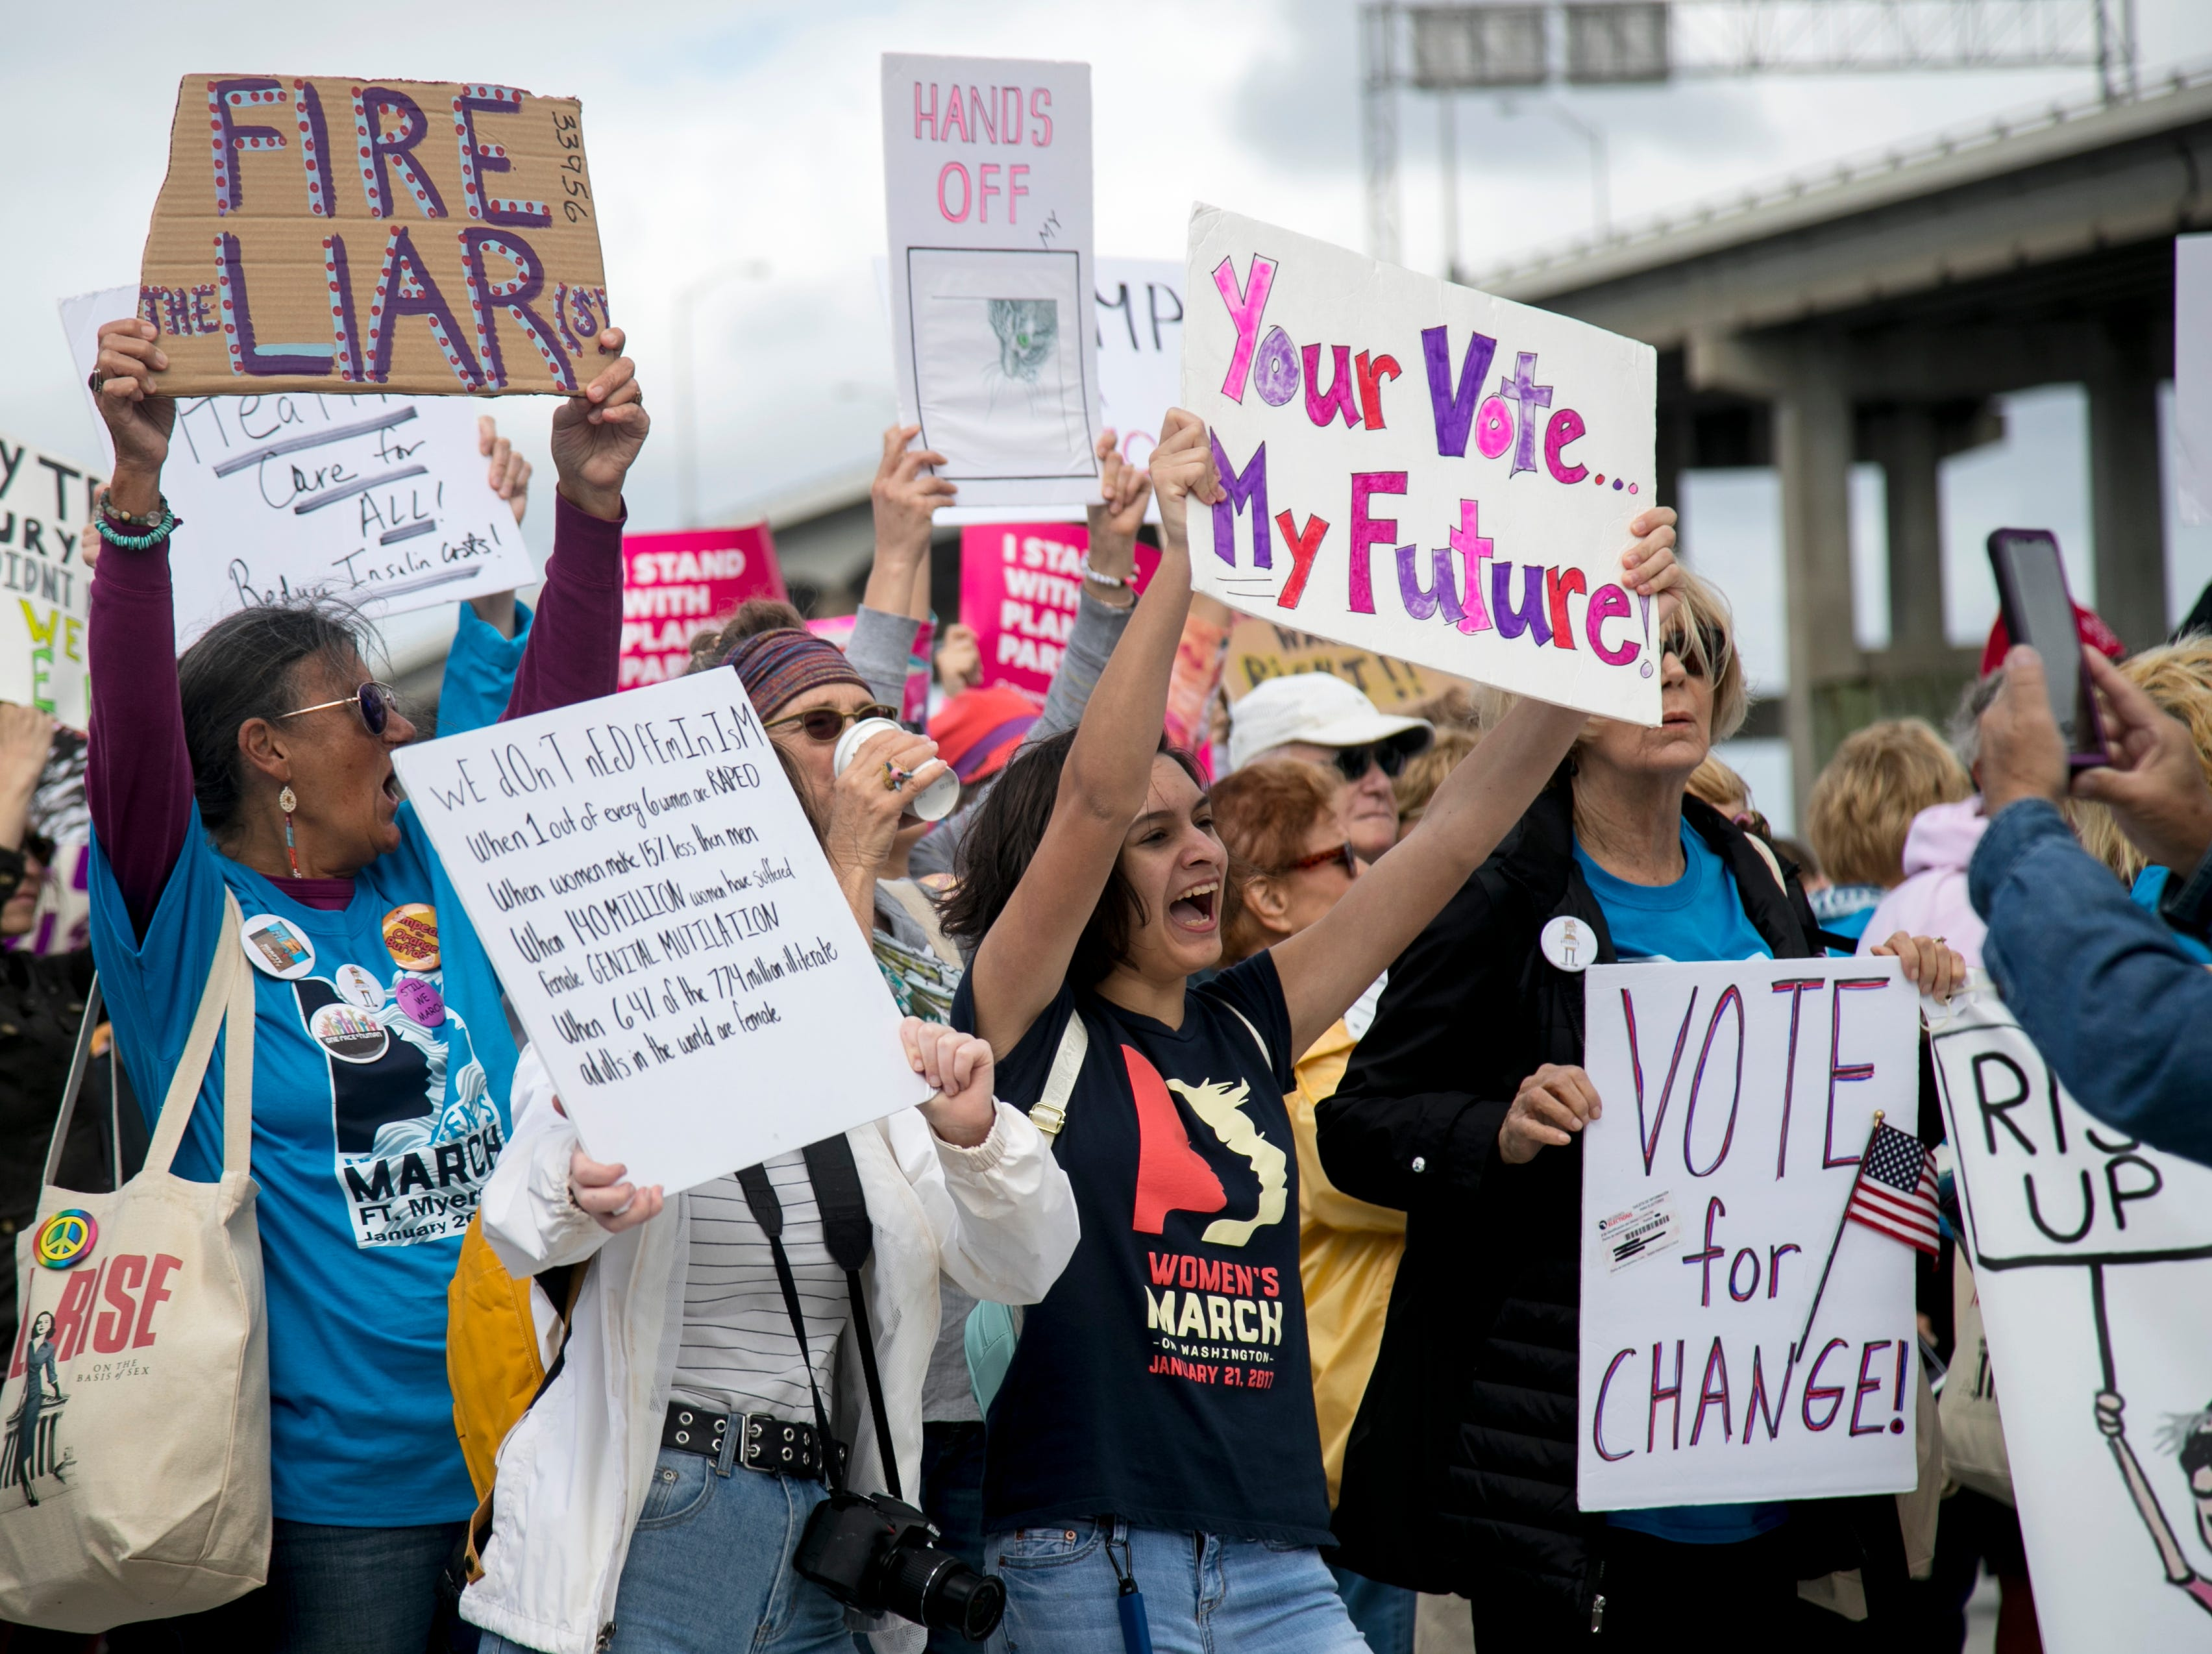 Participants in the Fort Myers Women's March cheer after marching through downtown Fort Myers on Sunday, Jan. 20, 2019.